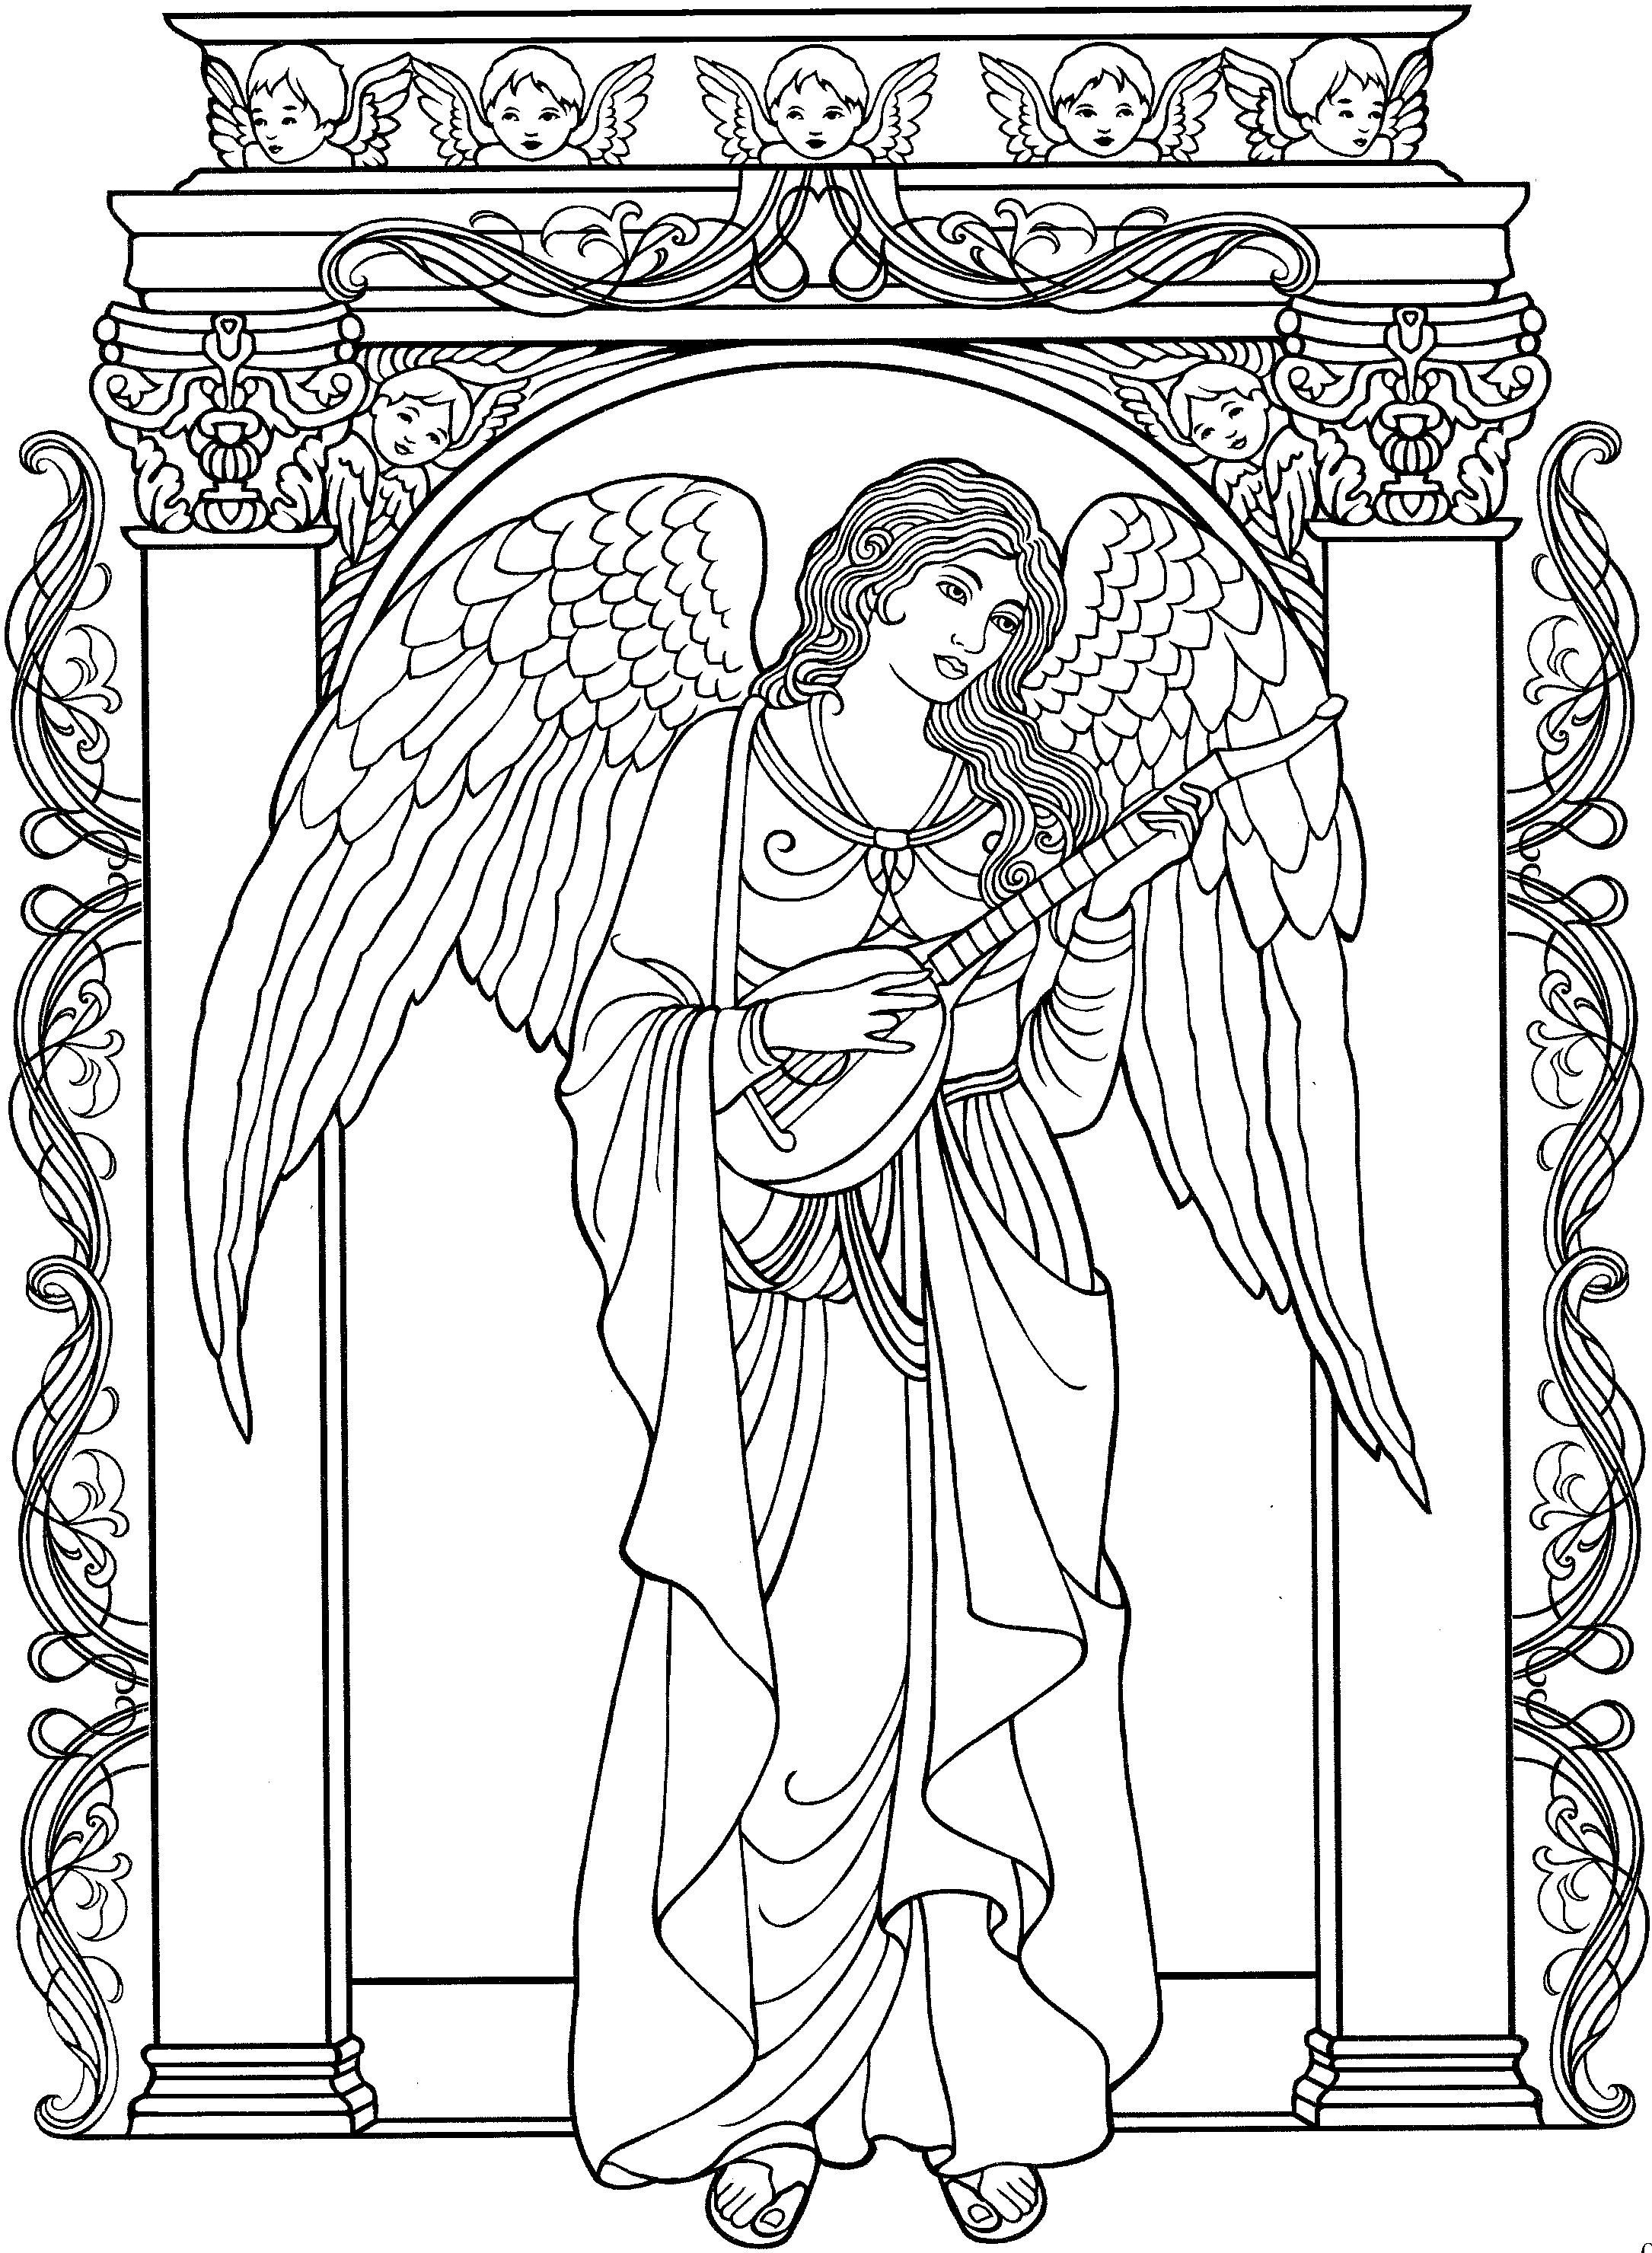 angels coloring pages # 5